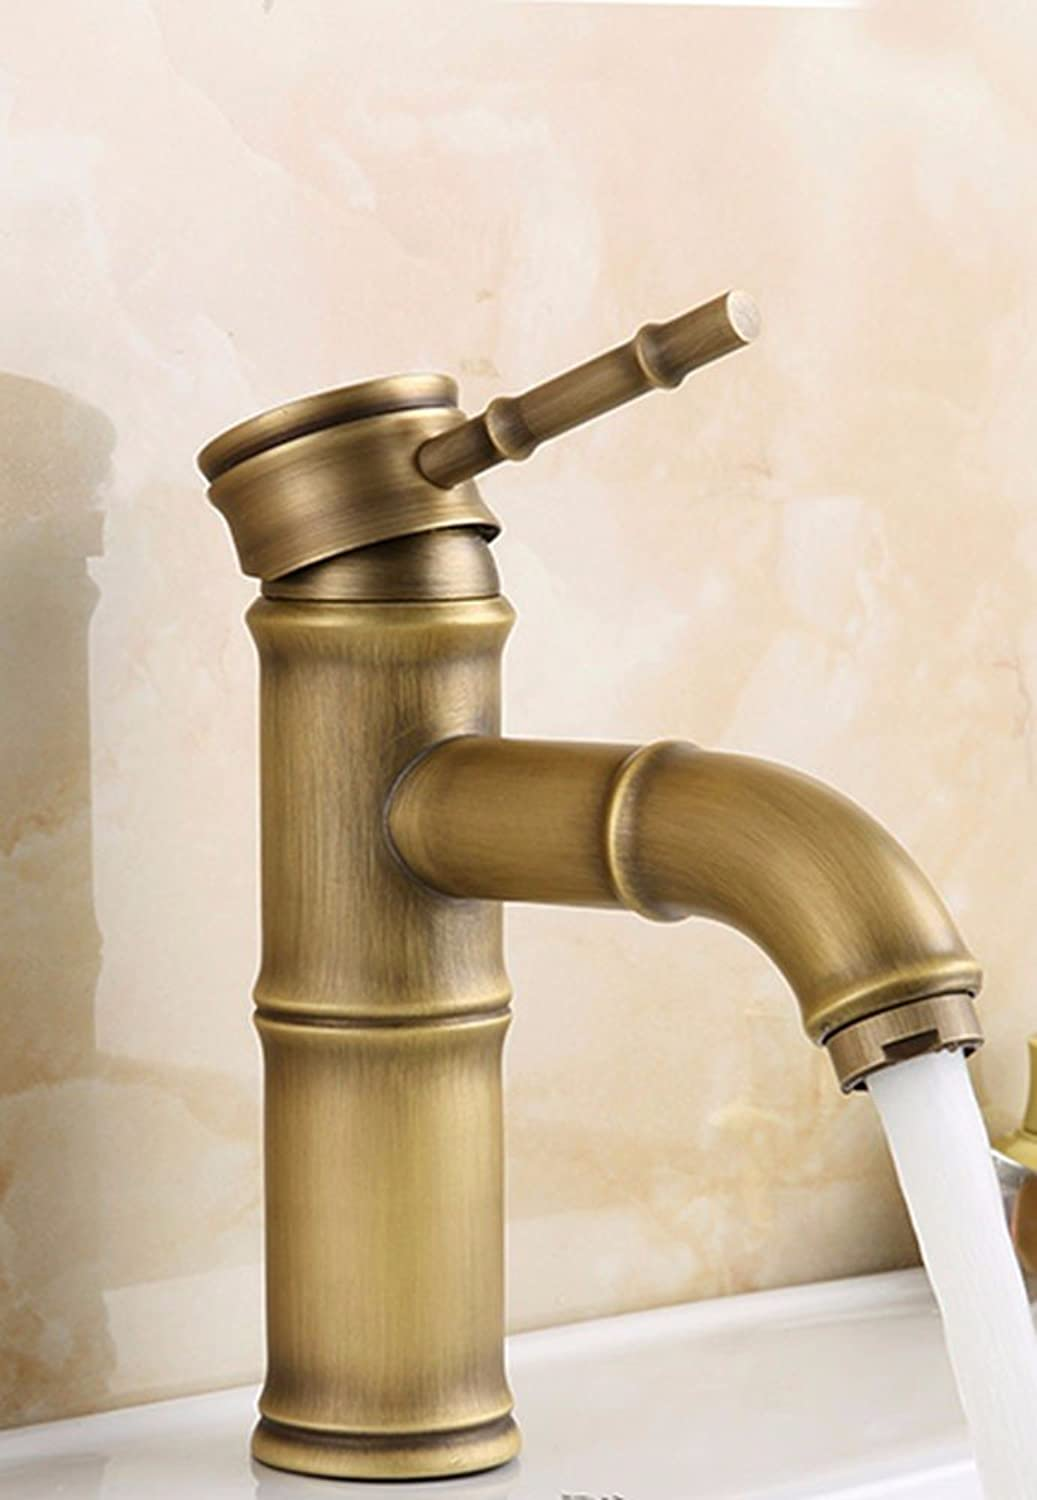 AWXJX European style retro style copper Hot and cold Single hole Wash your face Faucet